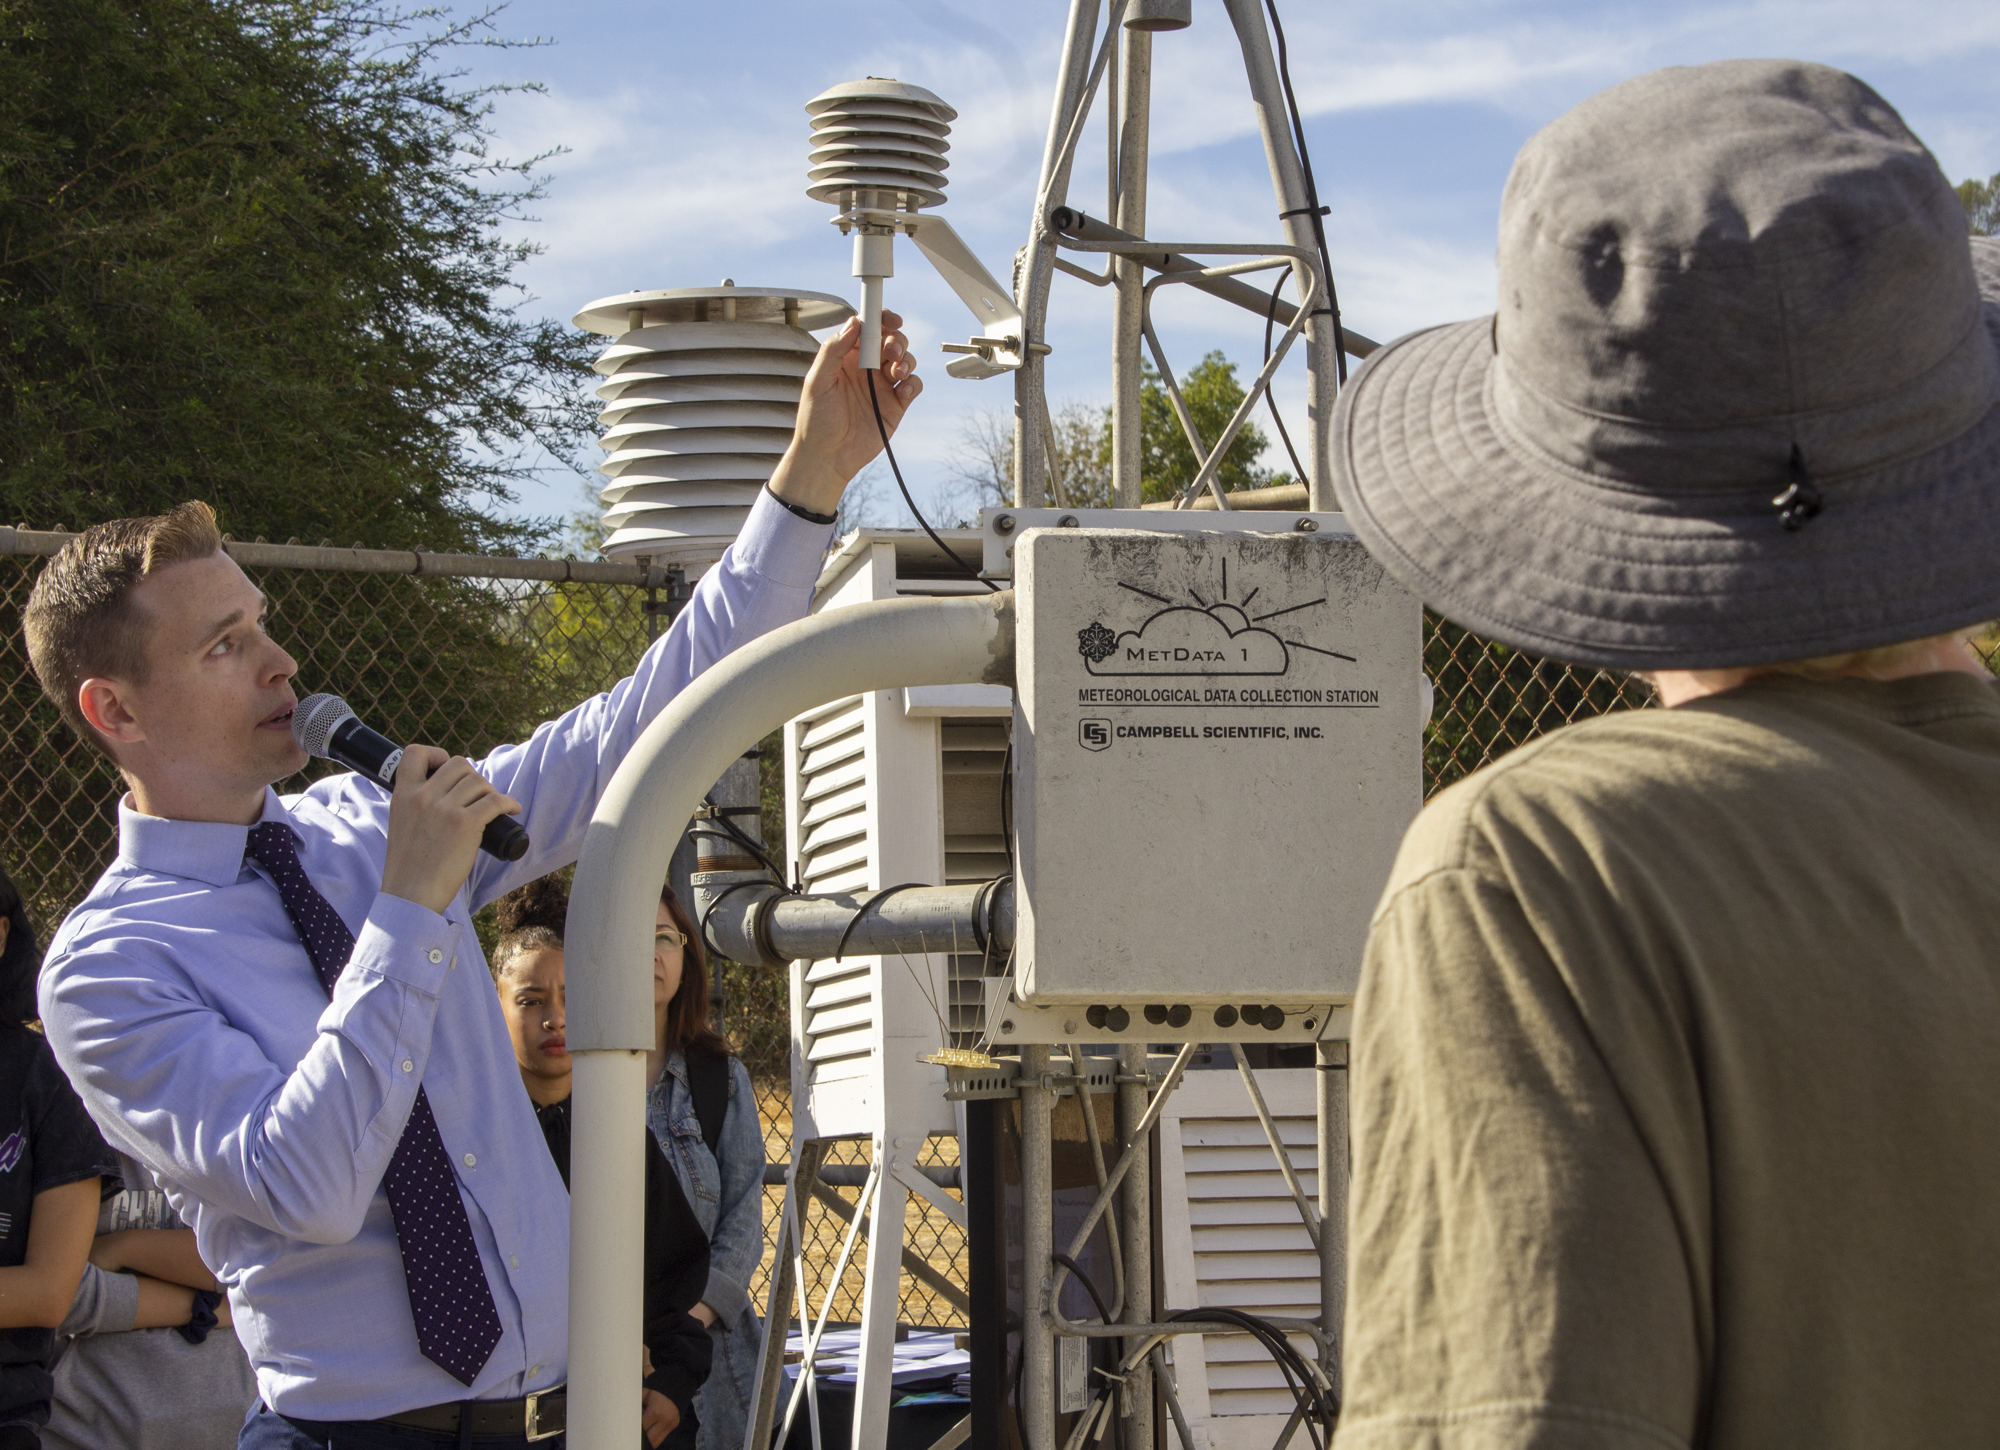 70 years of the Weather Station